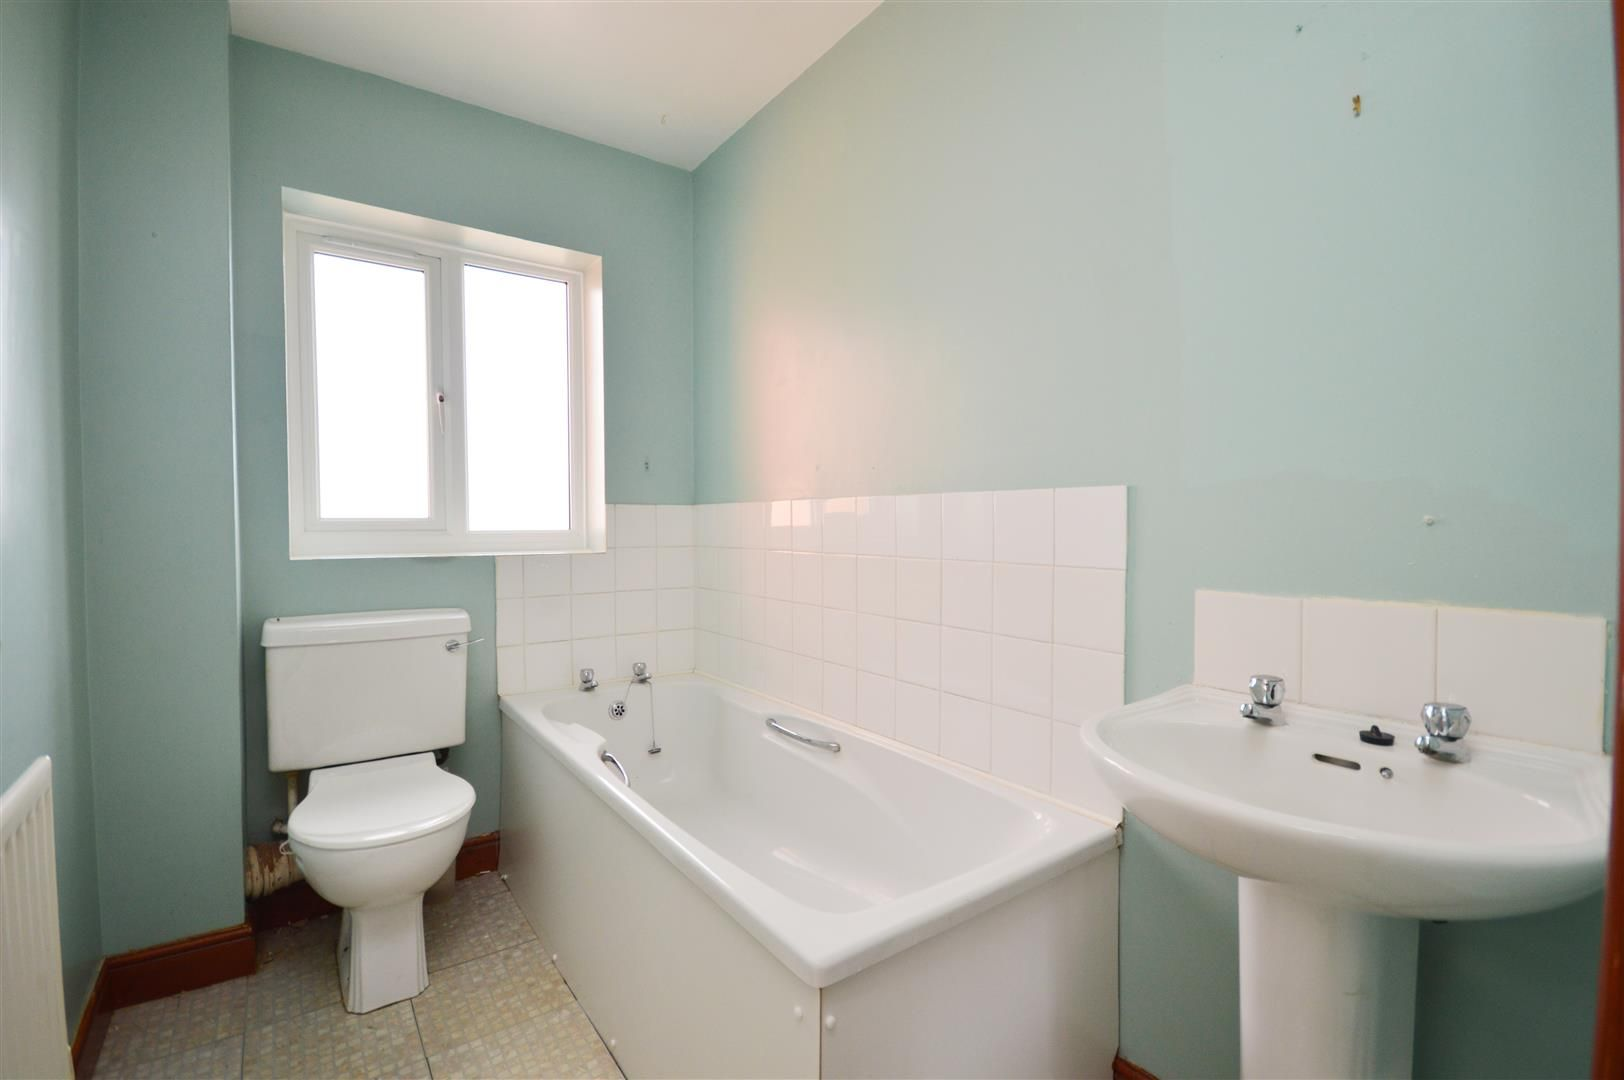 2 bed terraced for sale in Lower Bullingham  - Property Image 9